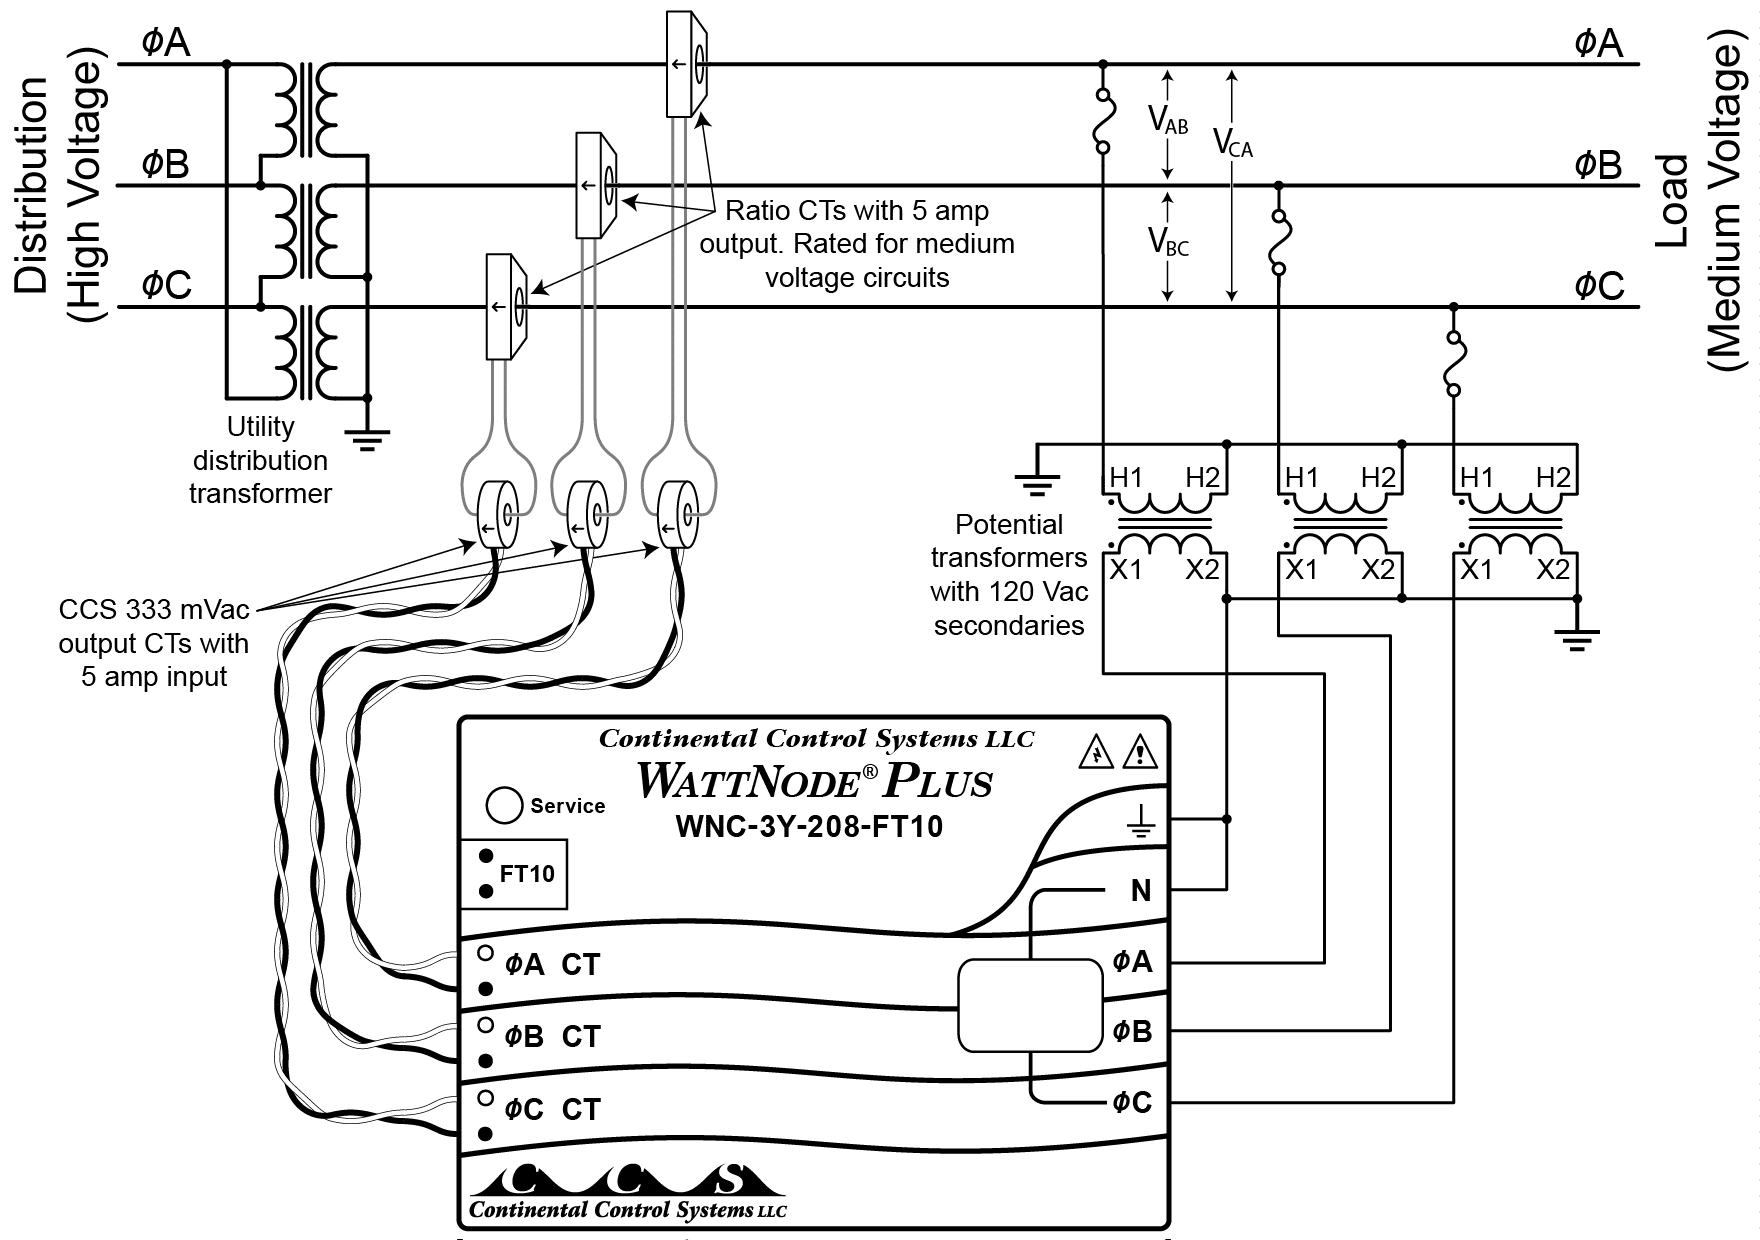 medium voltage ct wiring diagrams